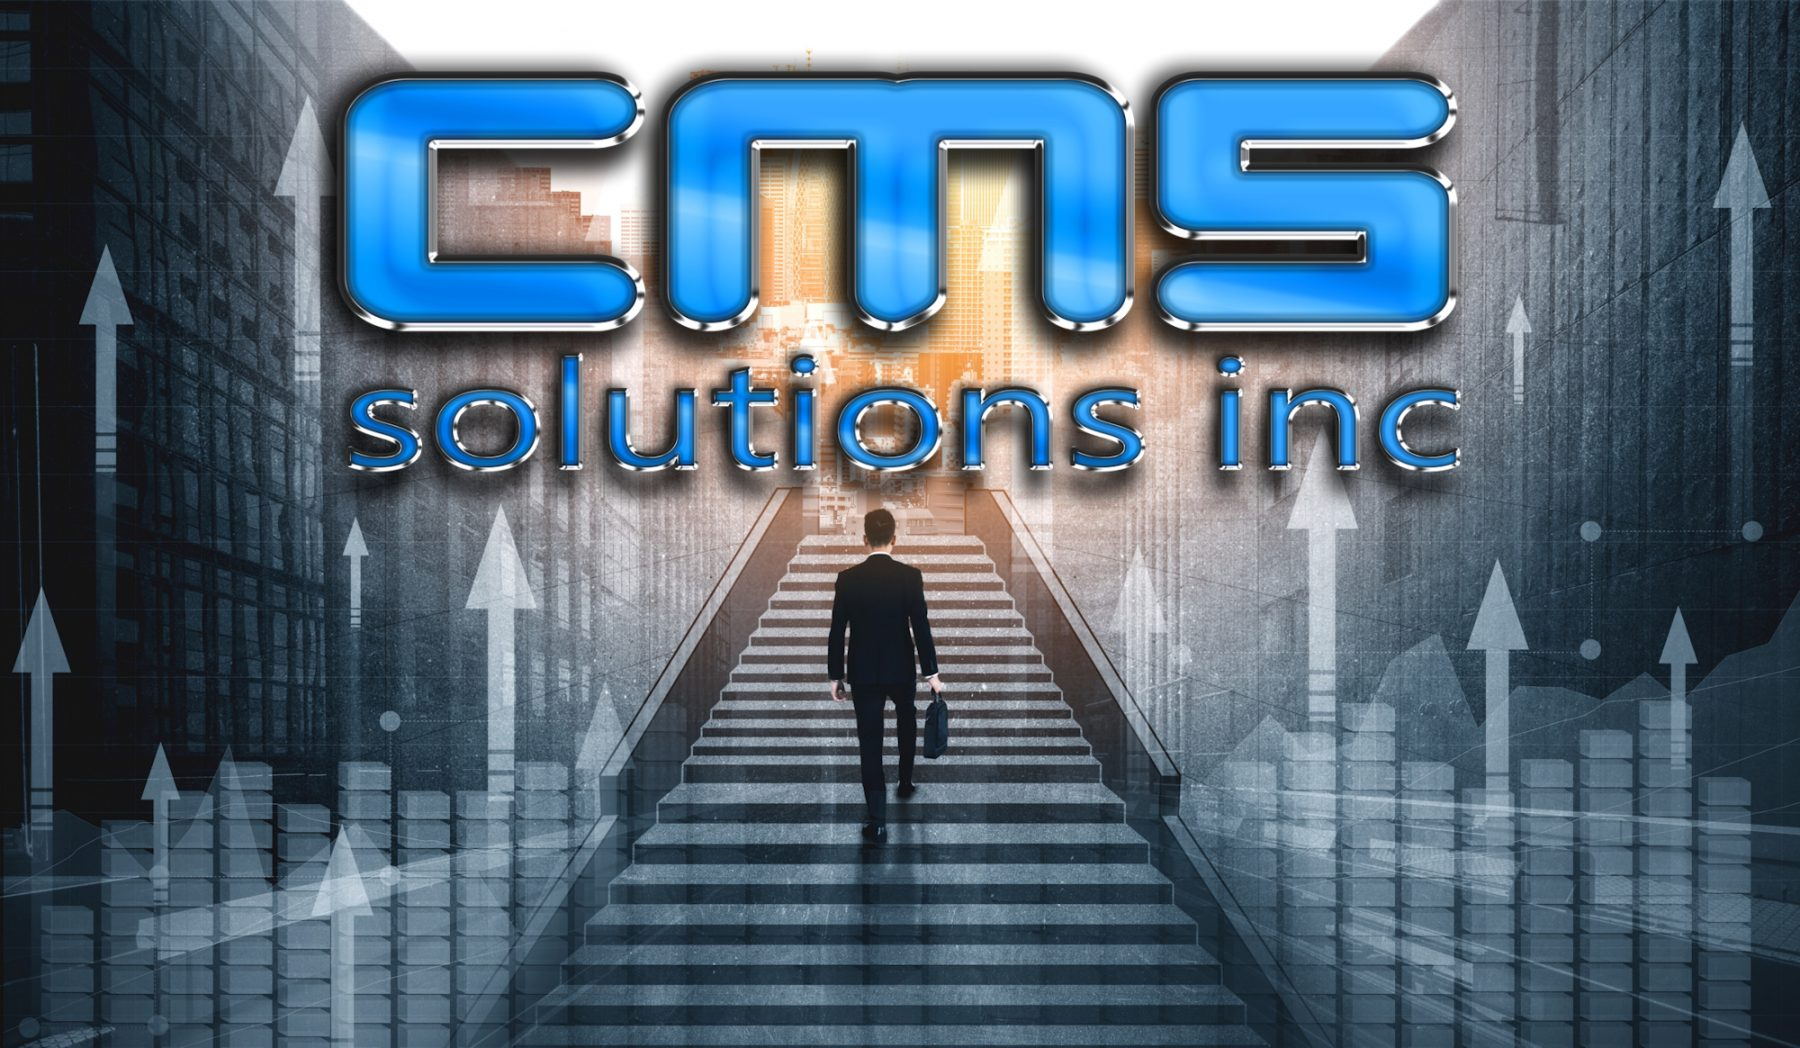 Wates living space appoint CMS Solutions Inc